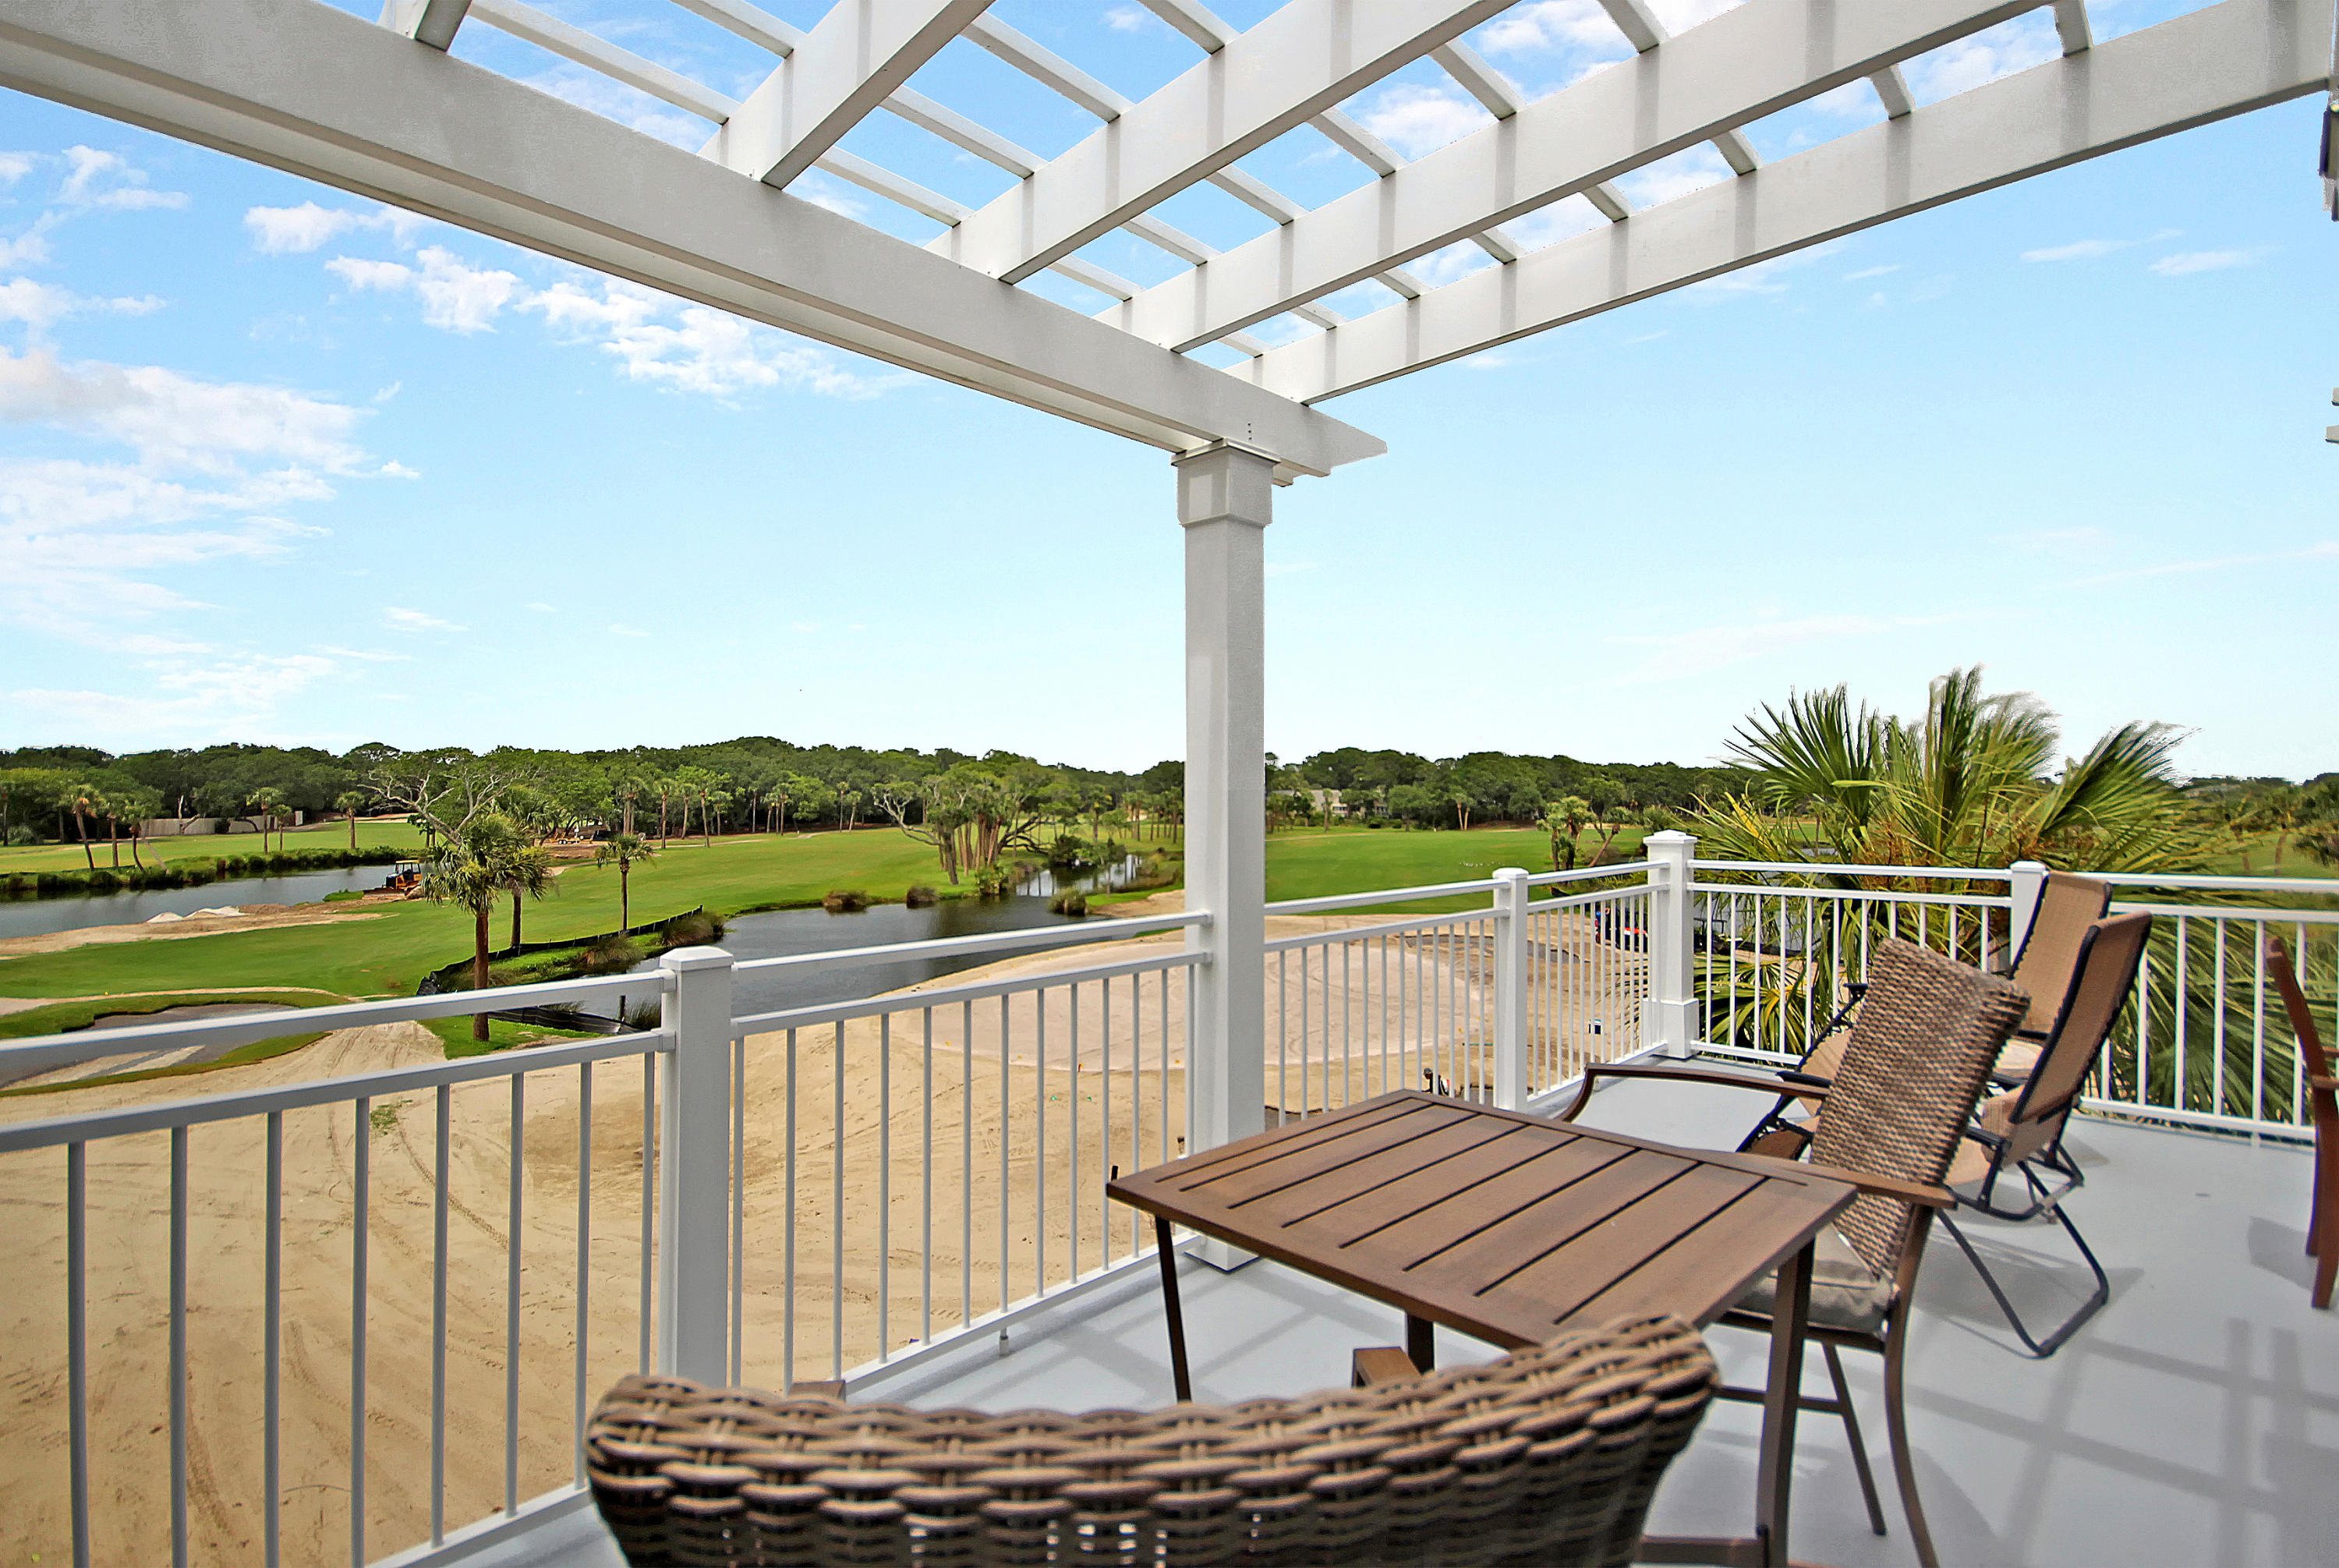 Atrium Villas Homes For Sale - 2912 Atrium Villa, Seabrook Island, SC - 8